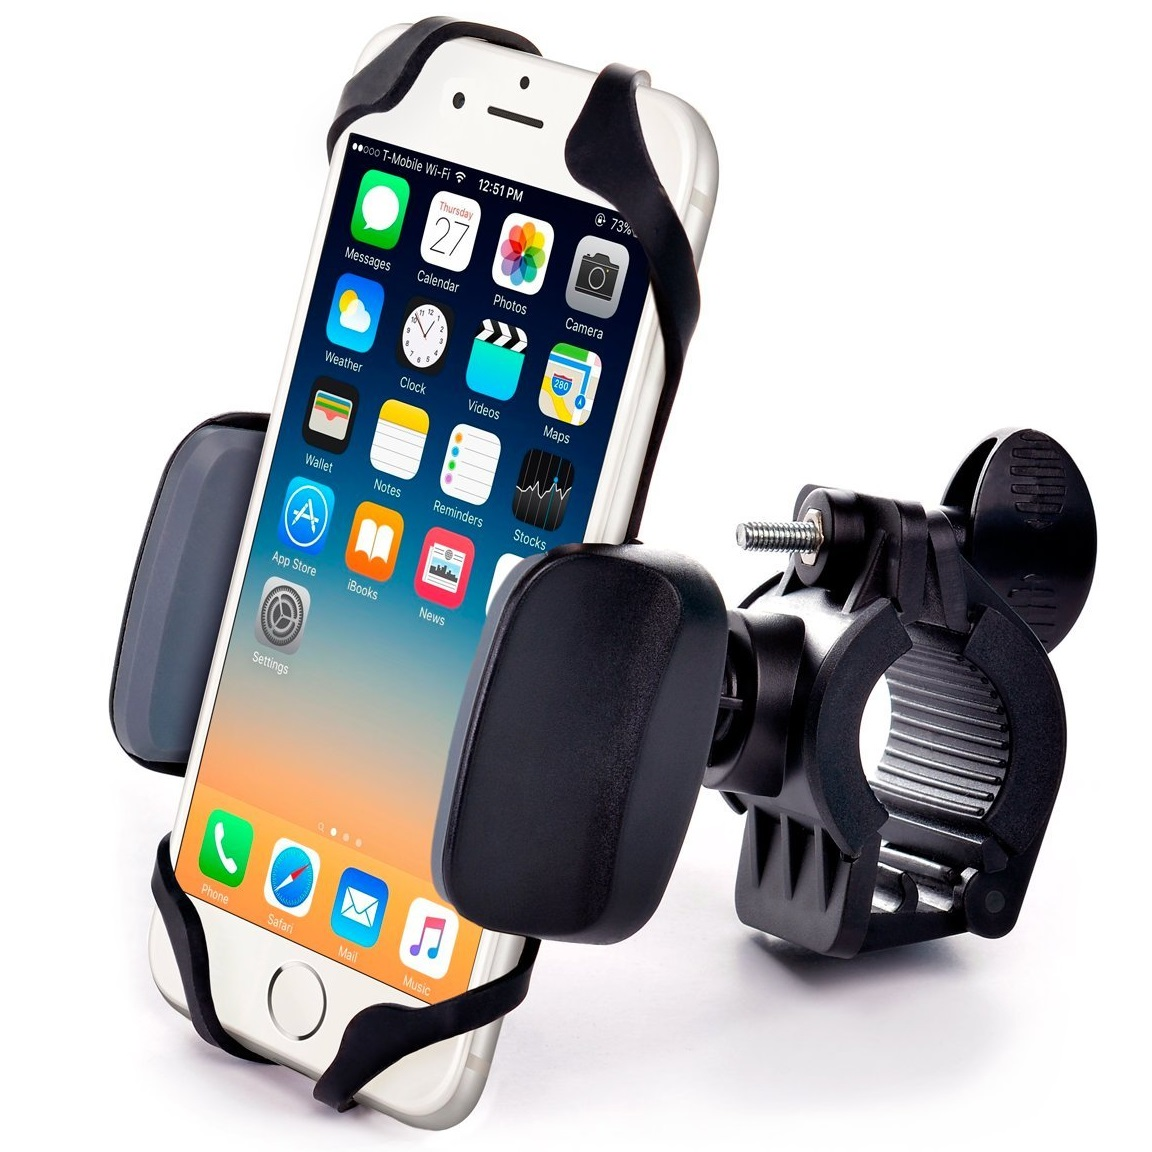 CAW.CAR Universal Bike and Motorcycle Phone Mount